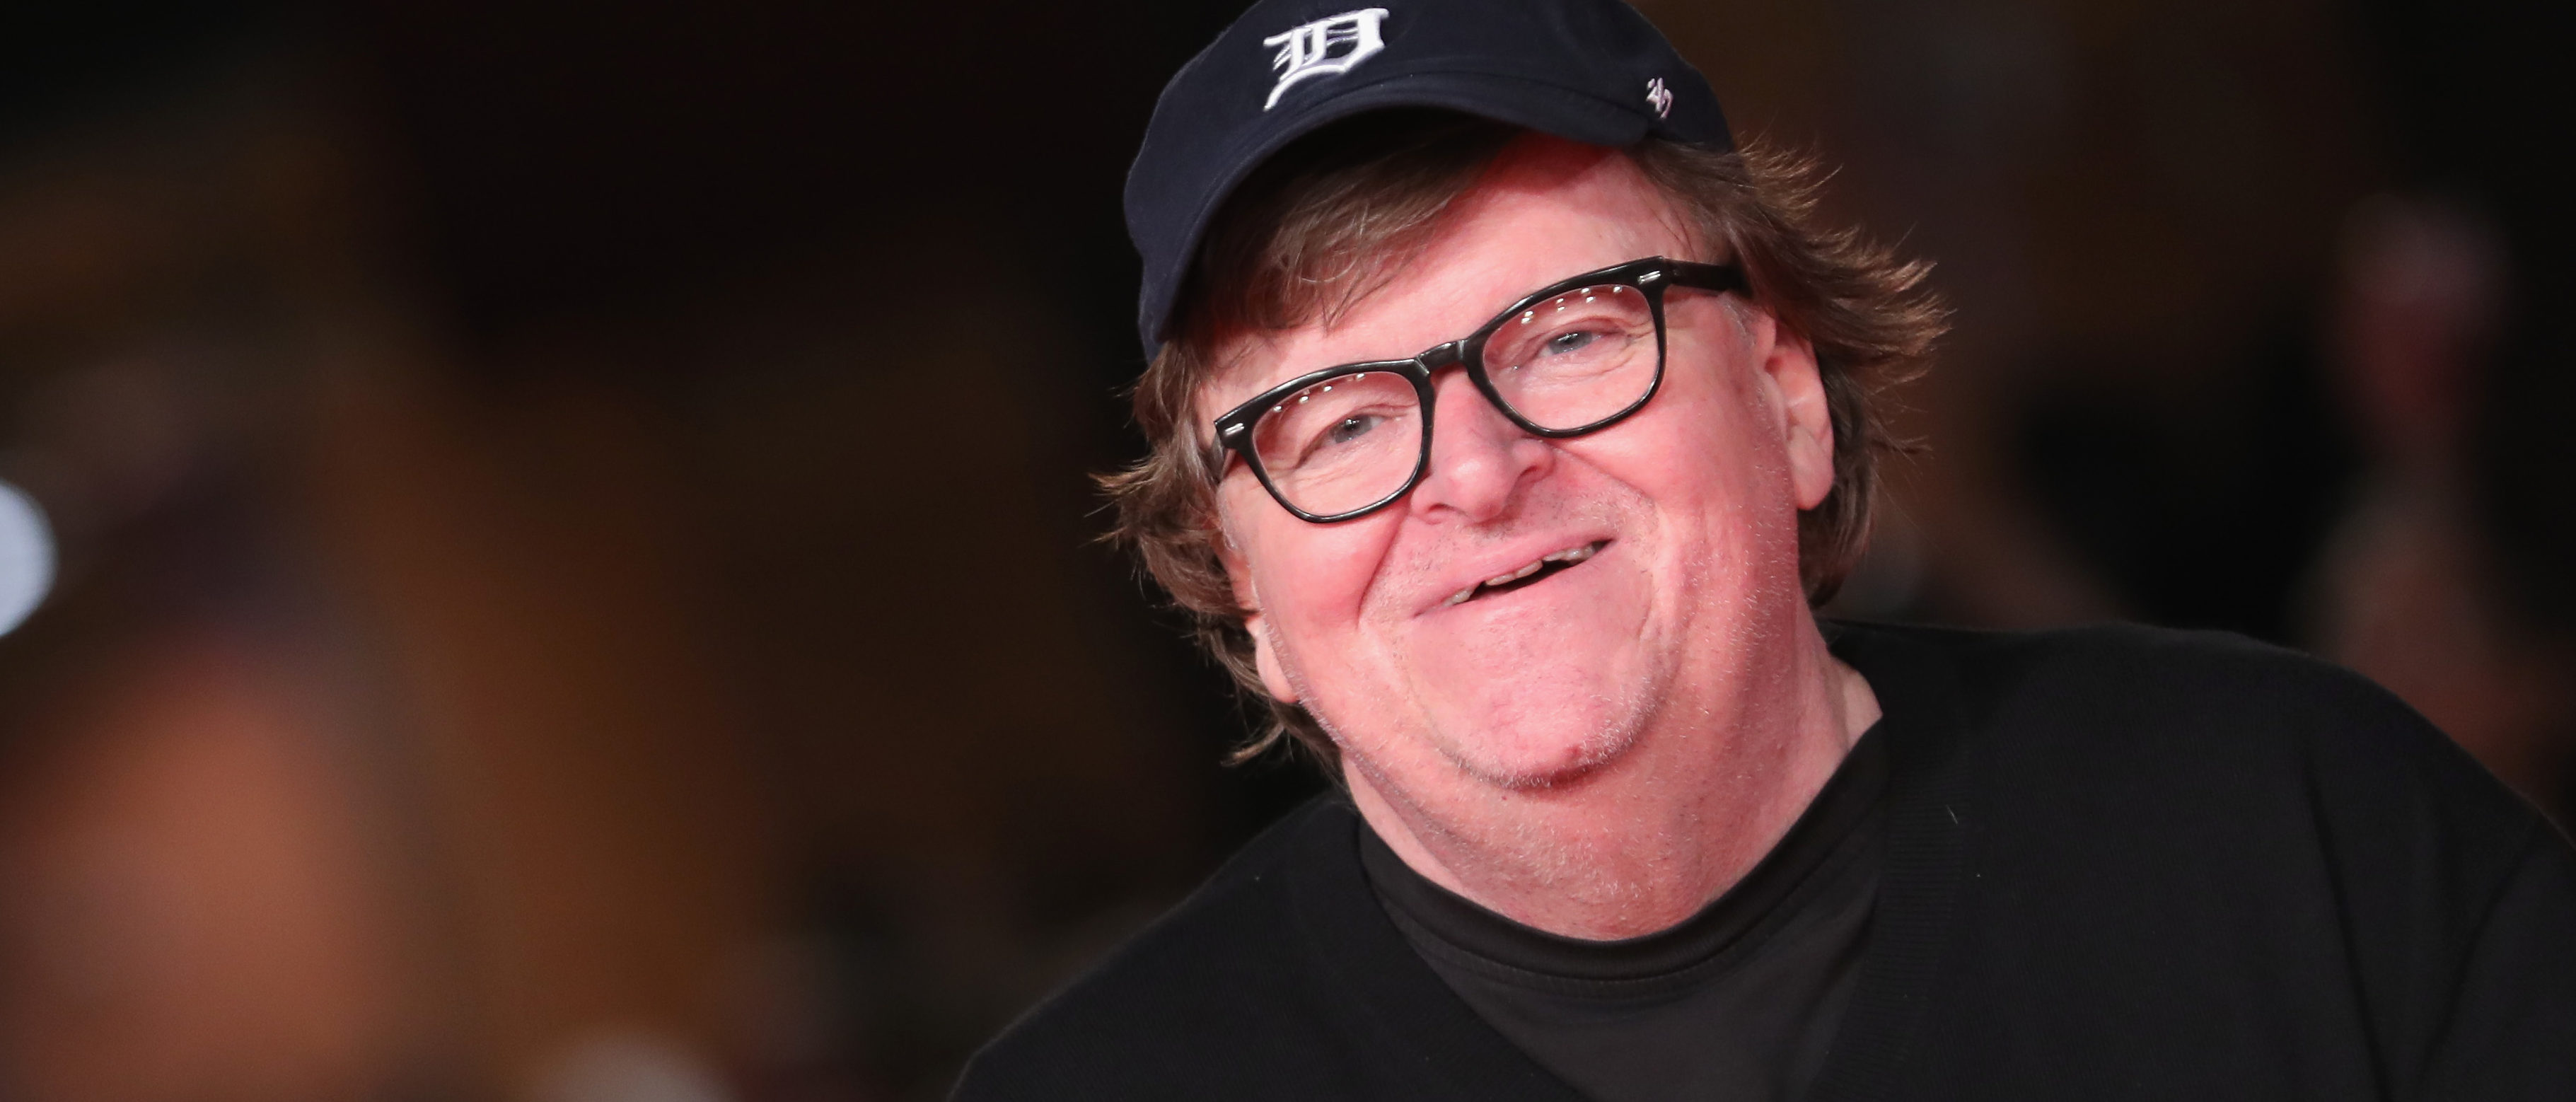 """Michael Moore walks the red carpet ahead of the """"Fahreneit 11/9"""" screening during the 13th Rome Film Fest at Auditorium Parco Della Musica on October 20, 2018 in Rome, Italy. (Photo by Vittorio Zunino Celotto/Getty Images)"""